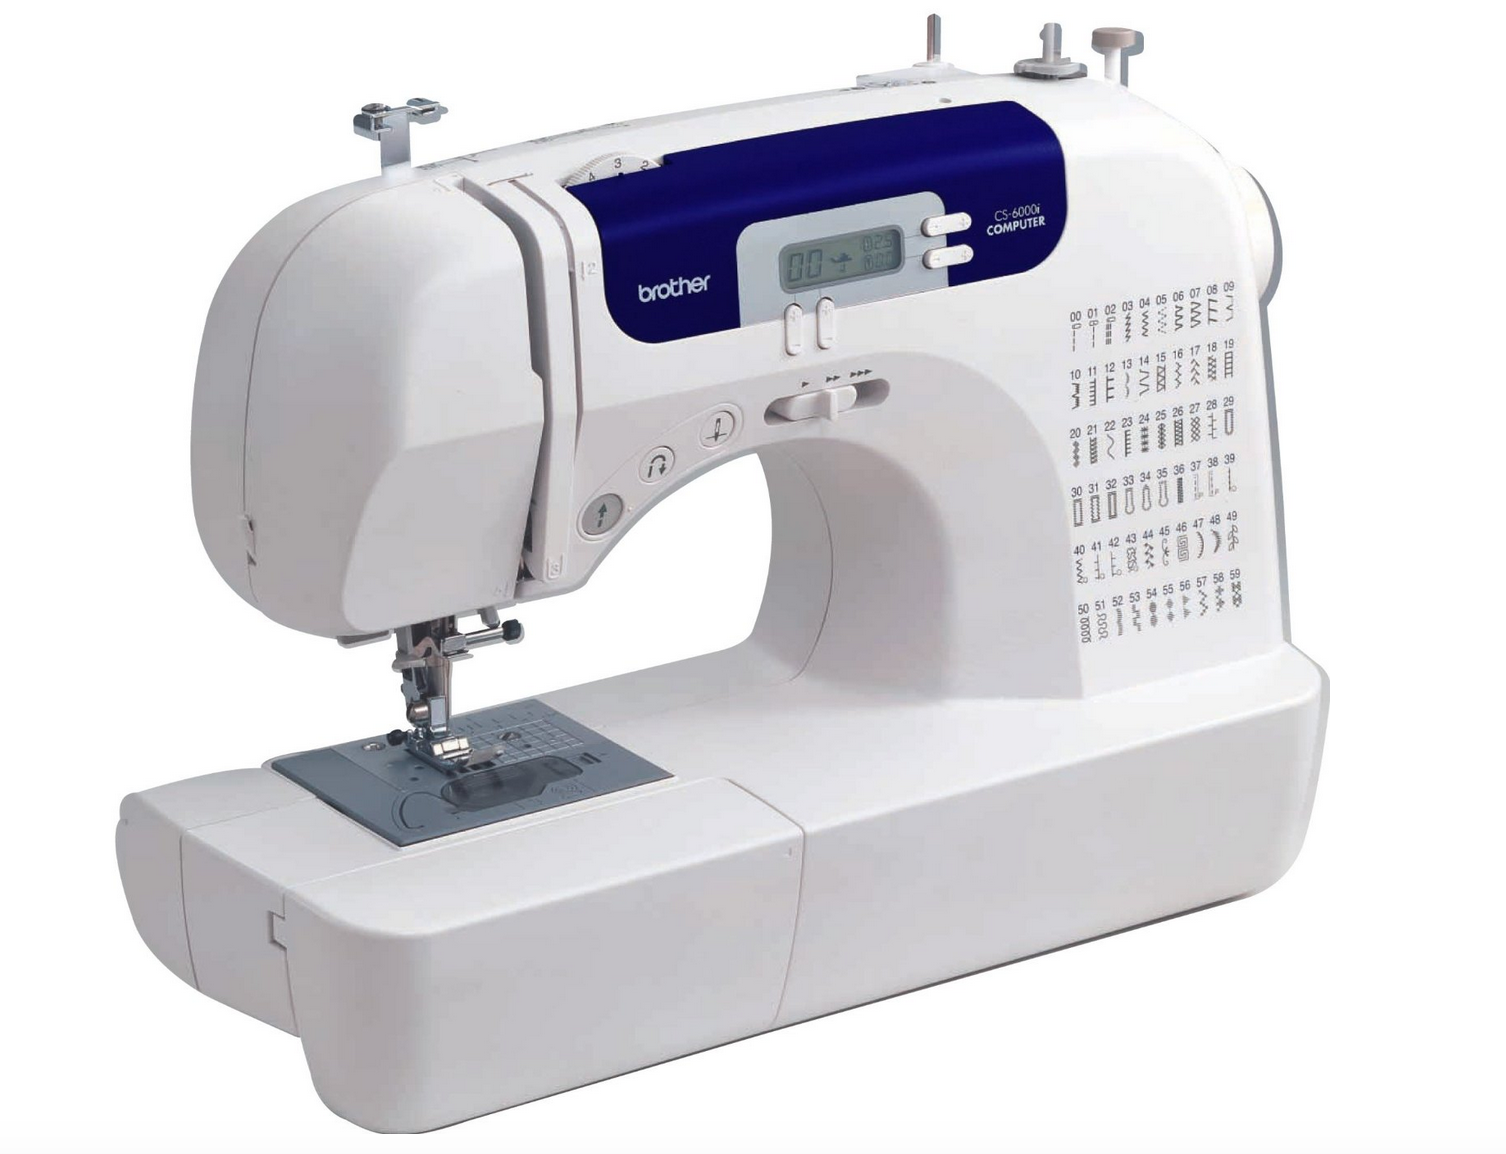 Highly Rated Brother Sewing Machine Only $114.99 Shipped (Reg. $449!) – Lowest Price